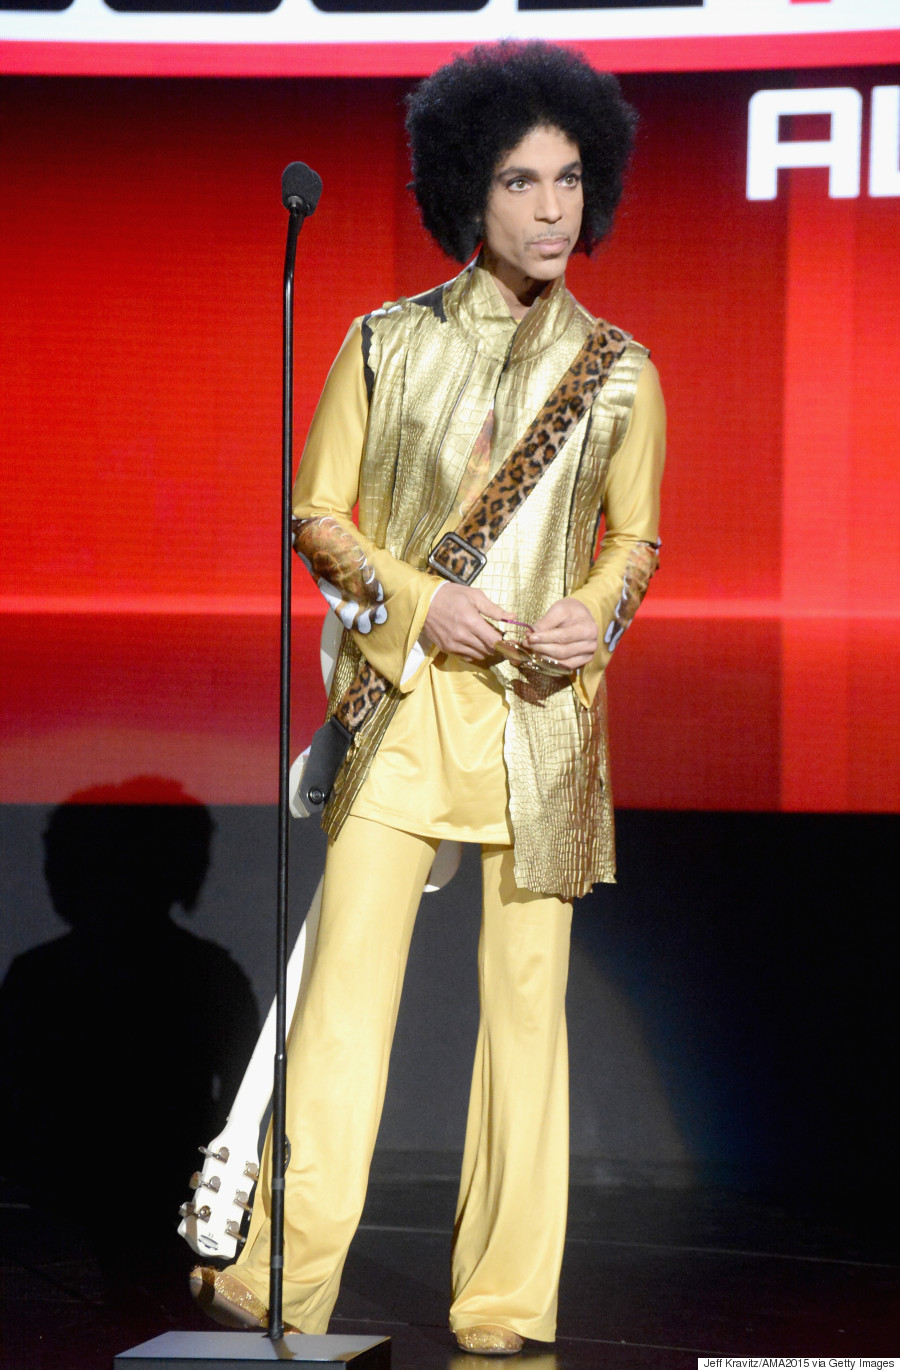 Prince Style A Look Back At The Music Superstar 39 S Most Iconic Fashion Looks